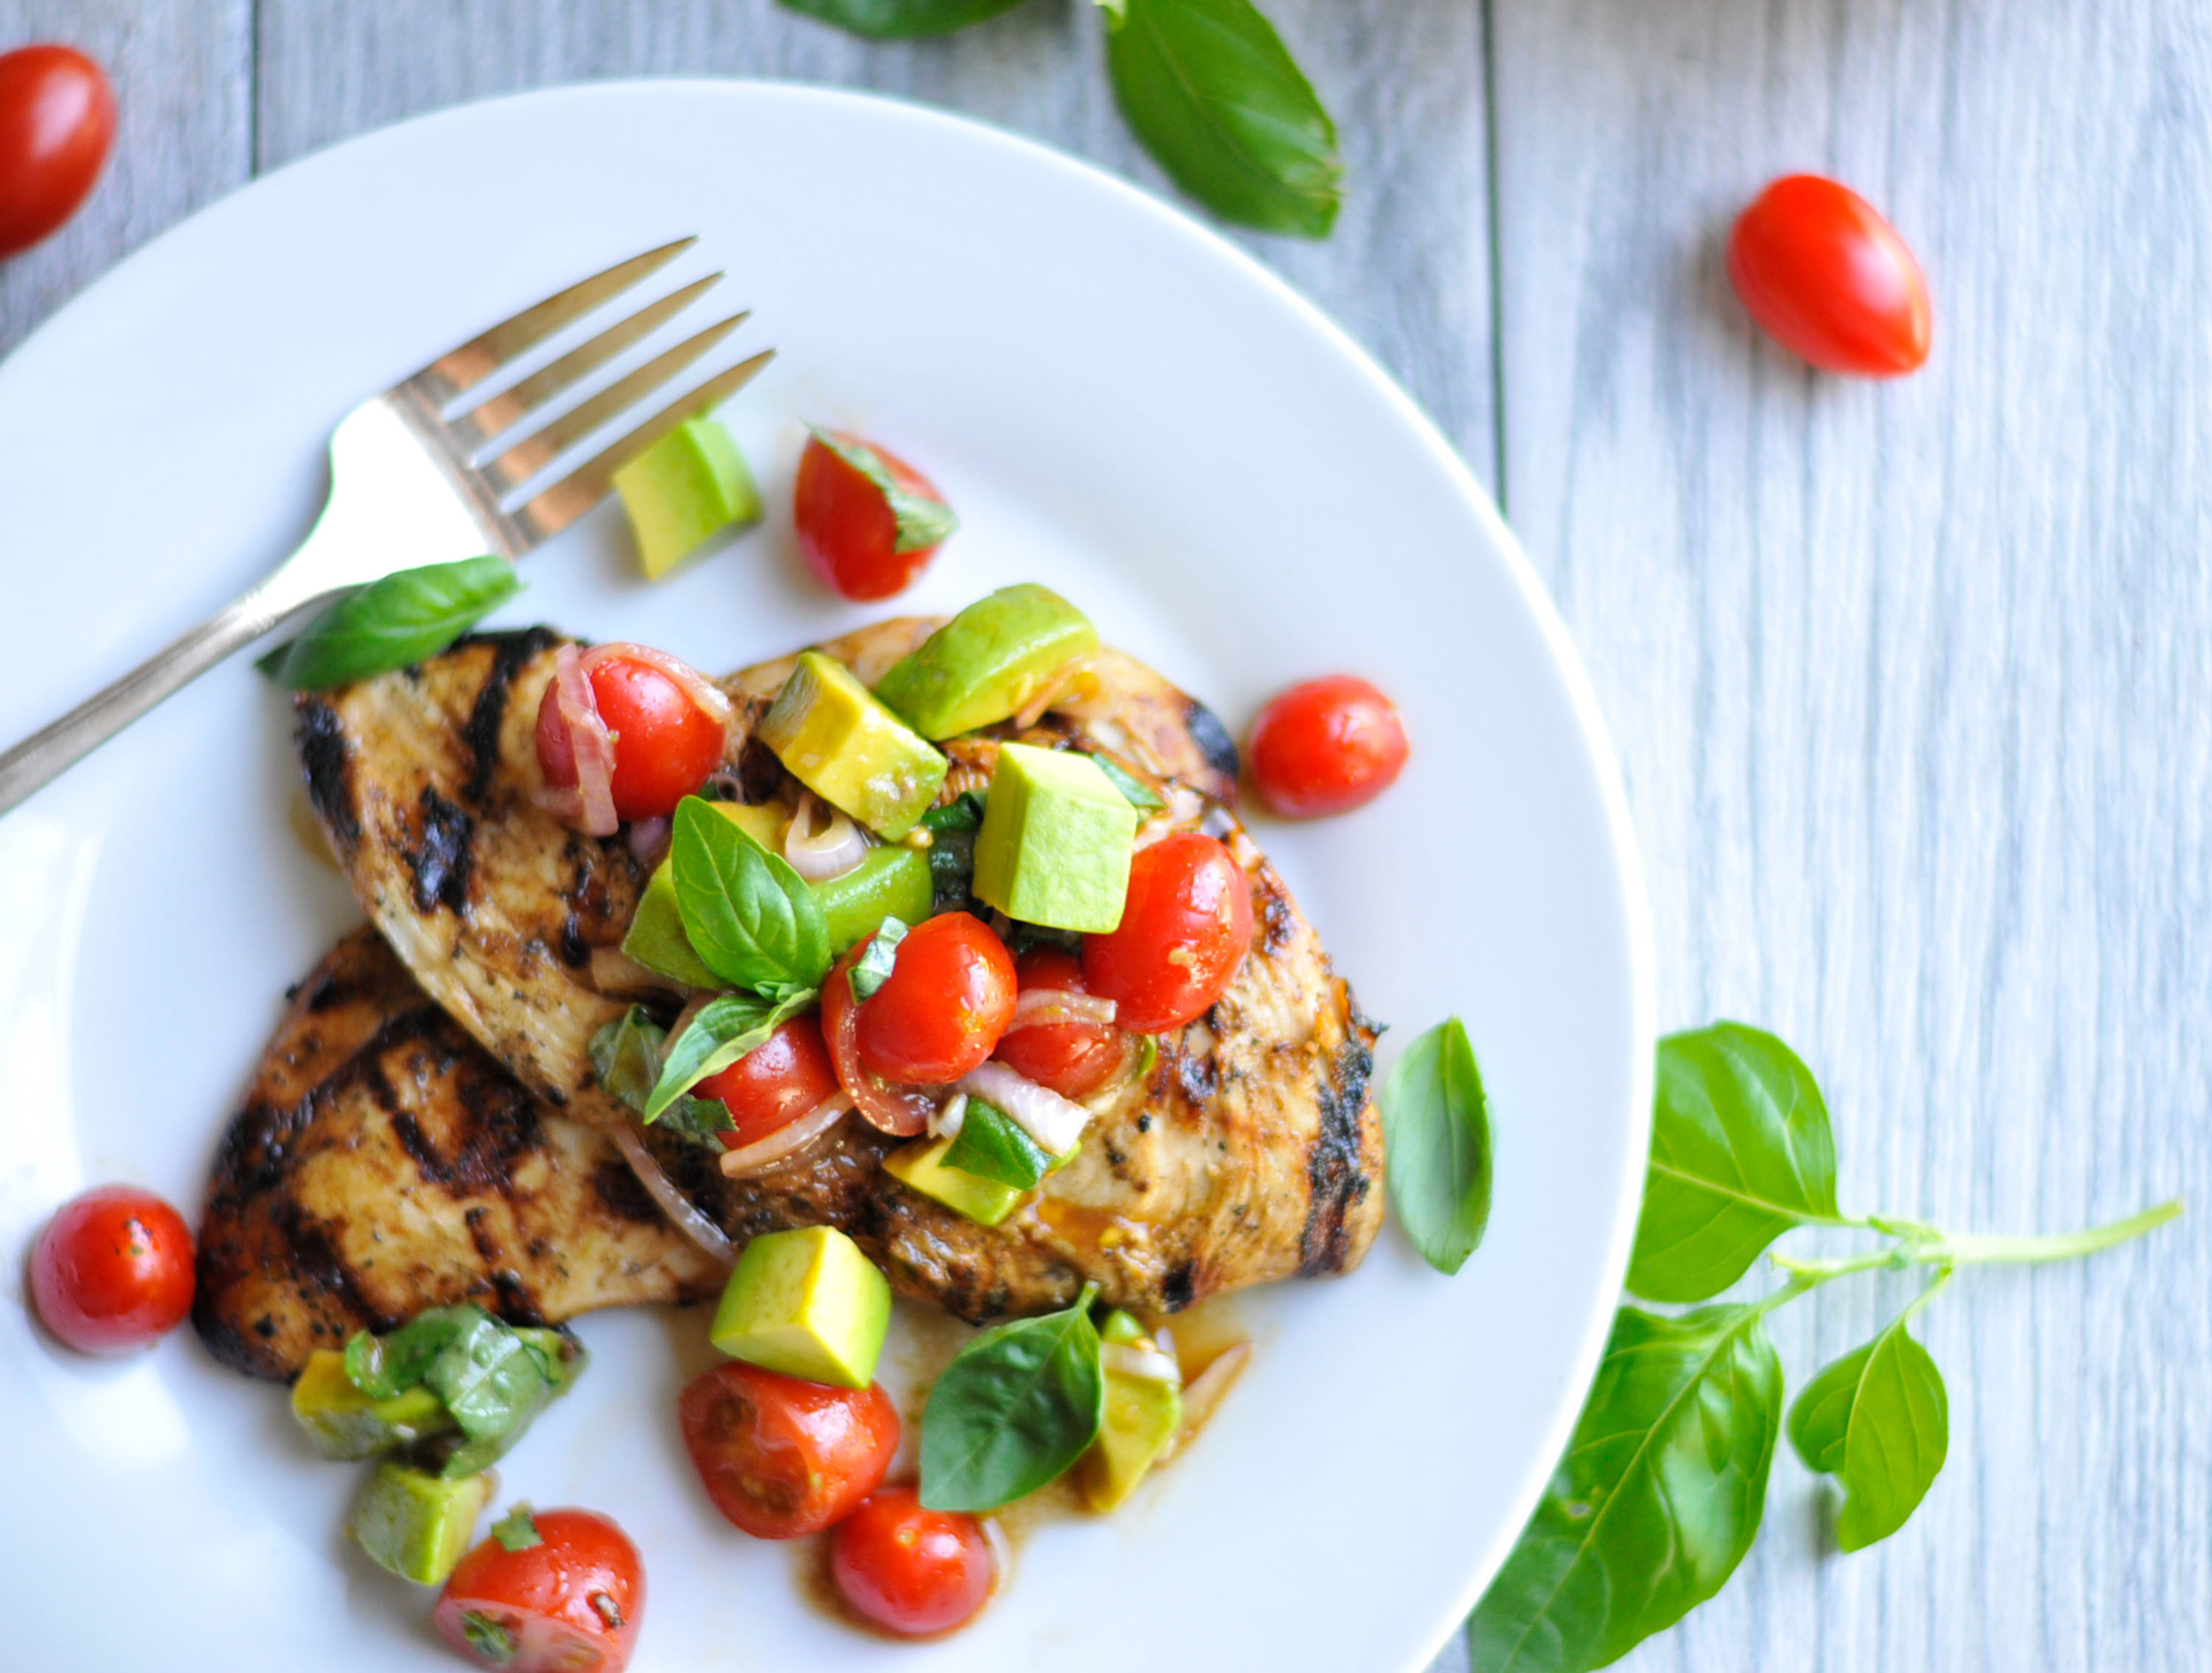 Healthy Recipes for Labor Day, Gluten-Free, Dairy-Free: Balsamic Grilled Chicken